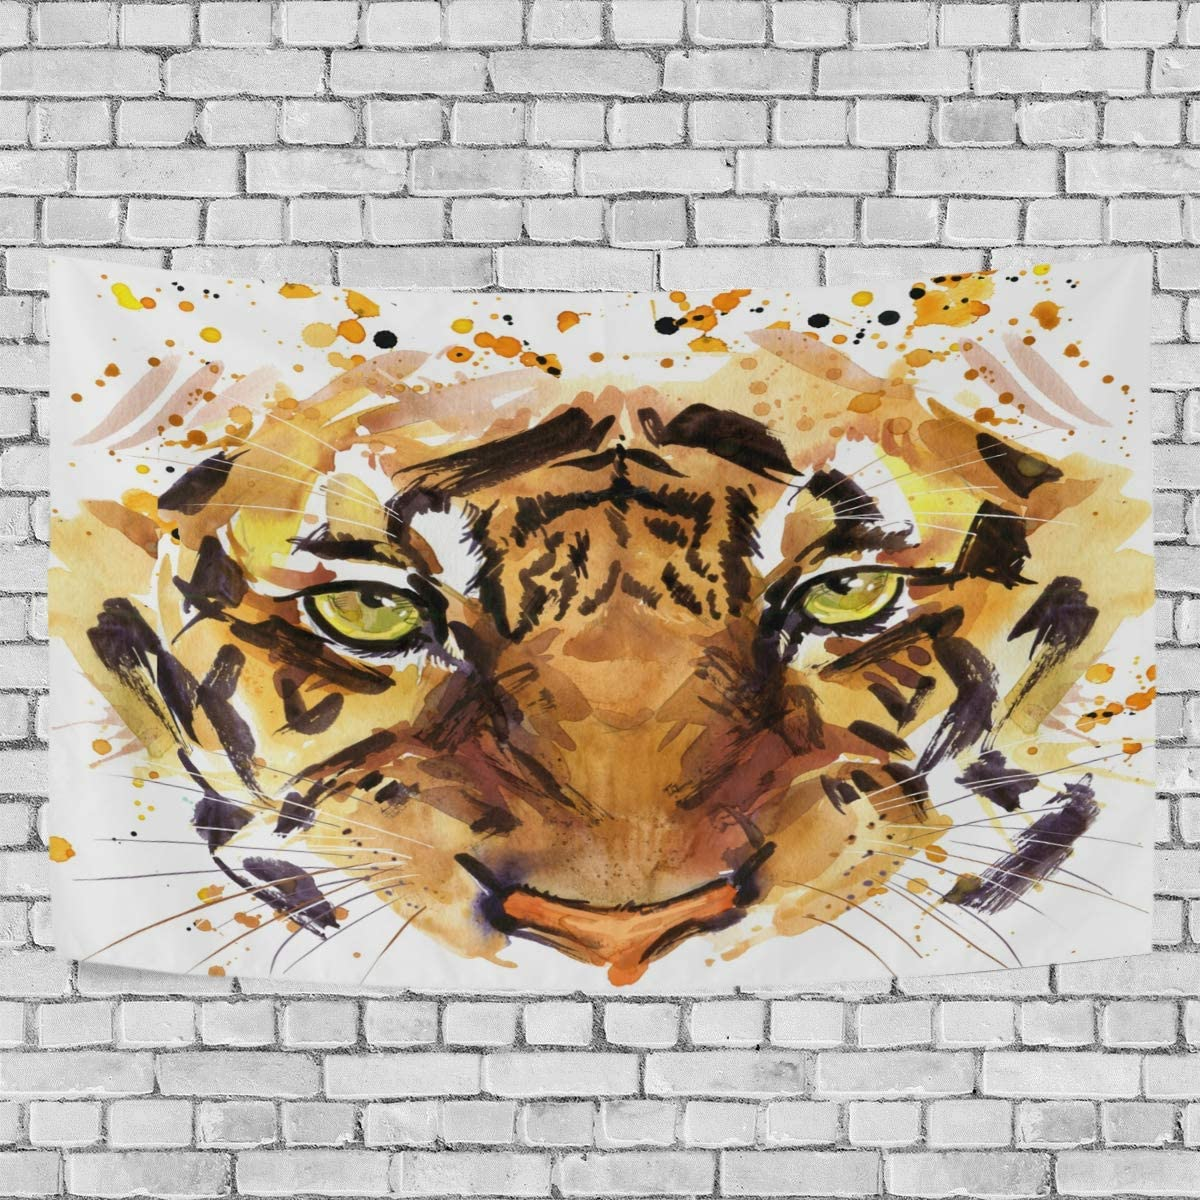 WOOR Tapestry Wall Hanging Vintage Cool Tiger Head Art Wall Tapestry for Living Room Bedroom Dorm Home Decor 90×60 Inches